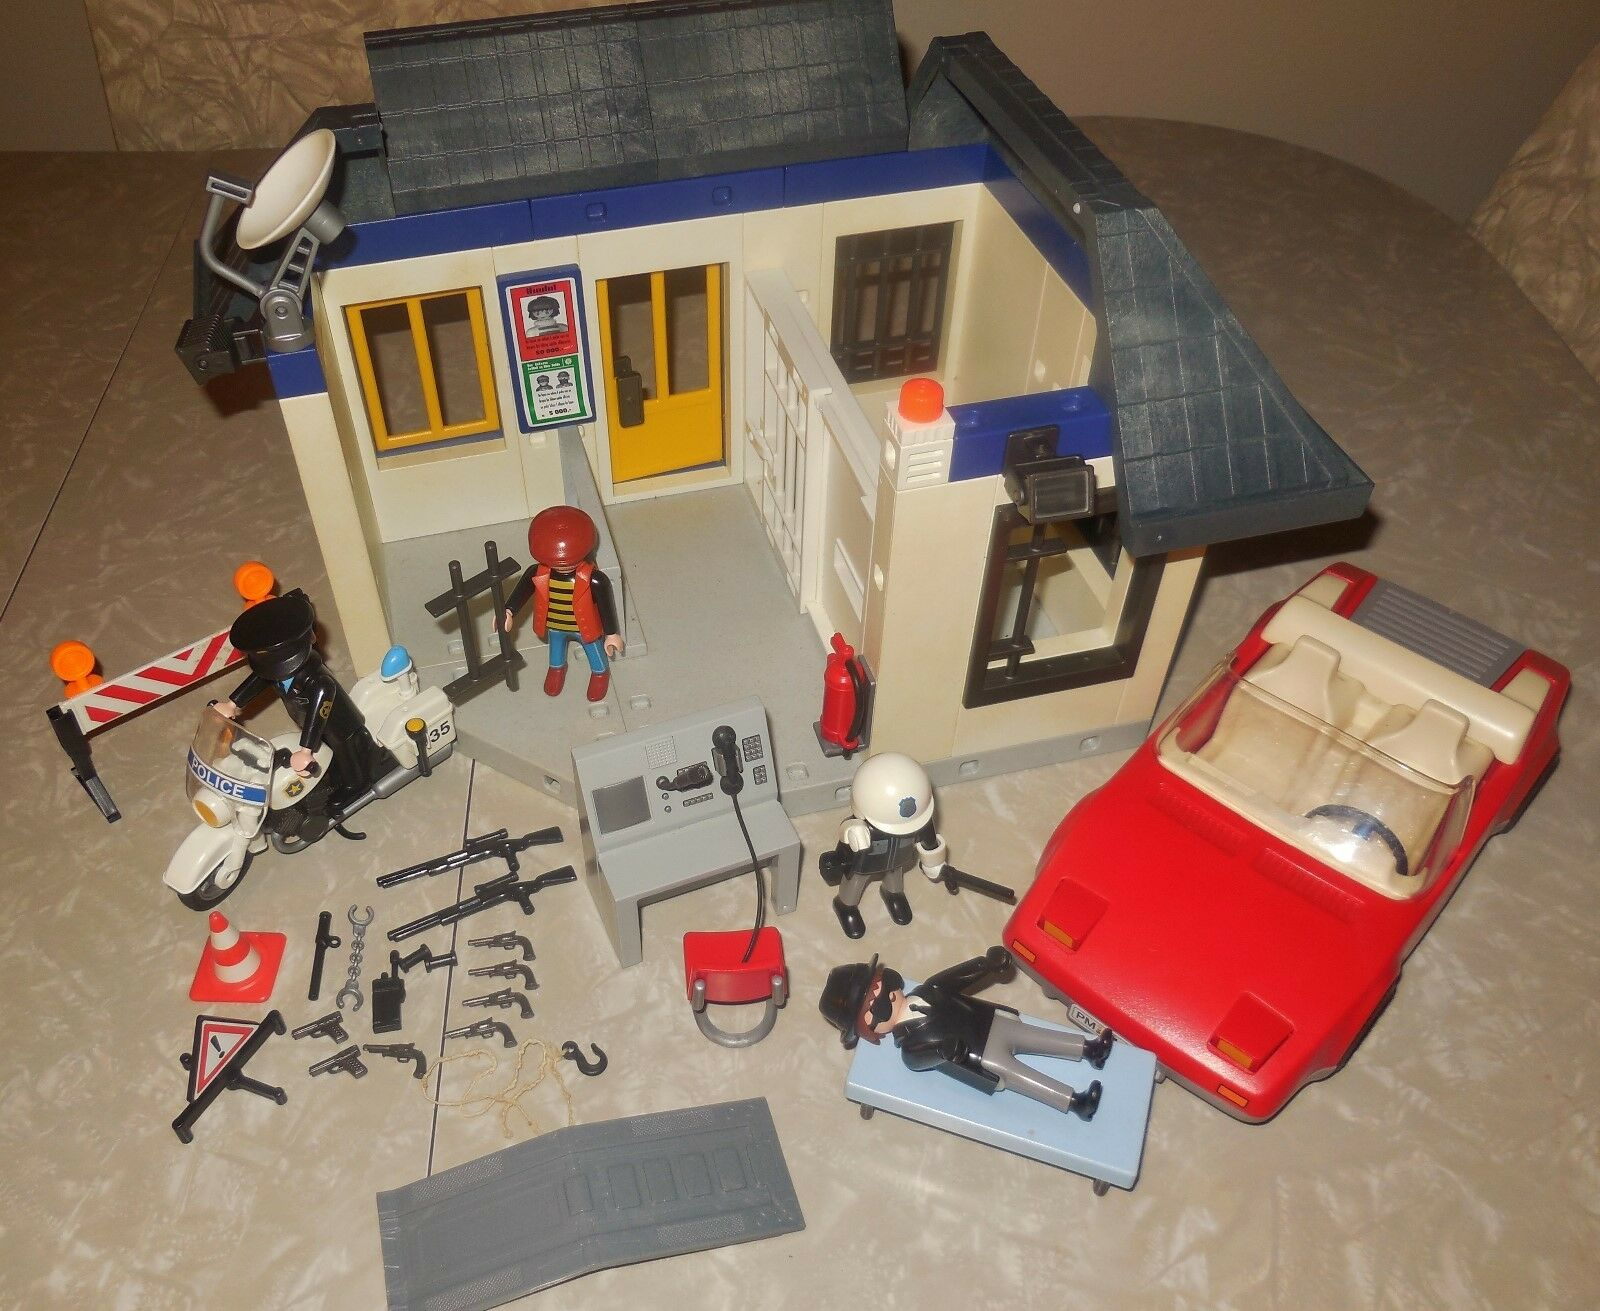 PLAYMOBIL SYSTEM 3623 POLICE STATION EMERGENCY HQ VEHICLE BUILDING HOUSE SET LOT